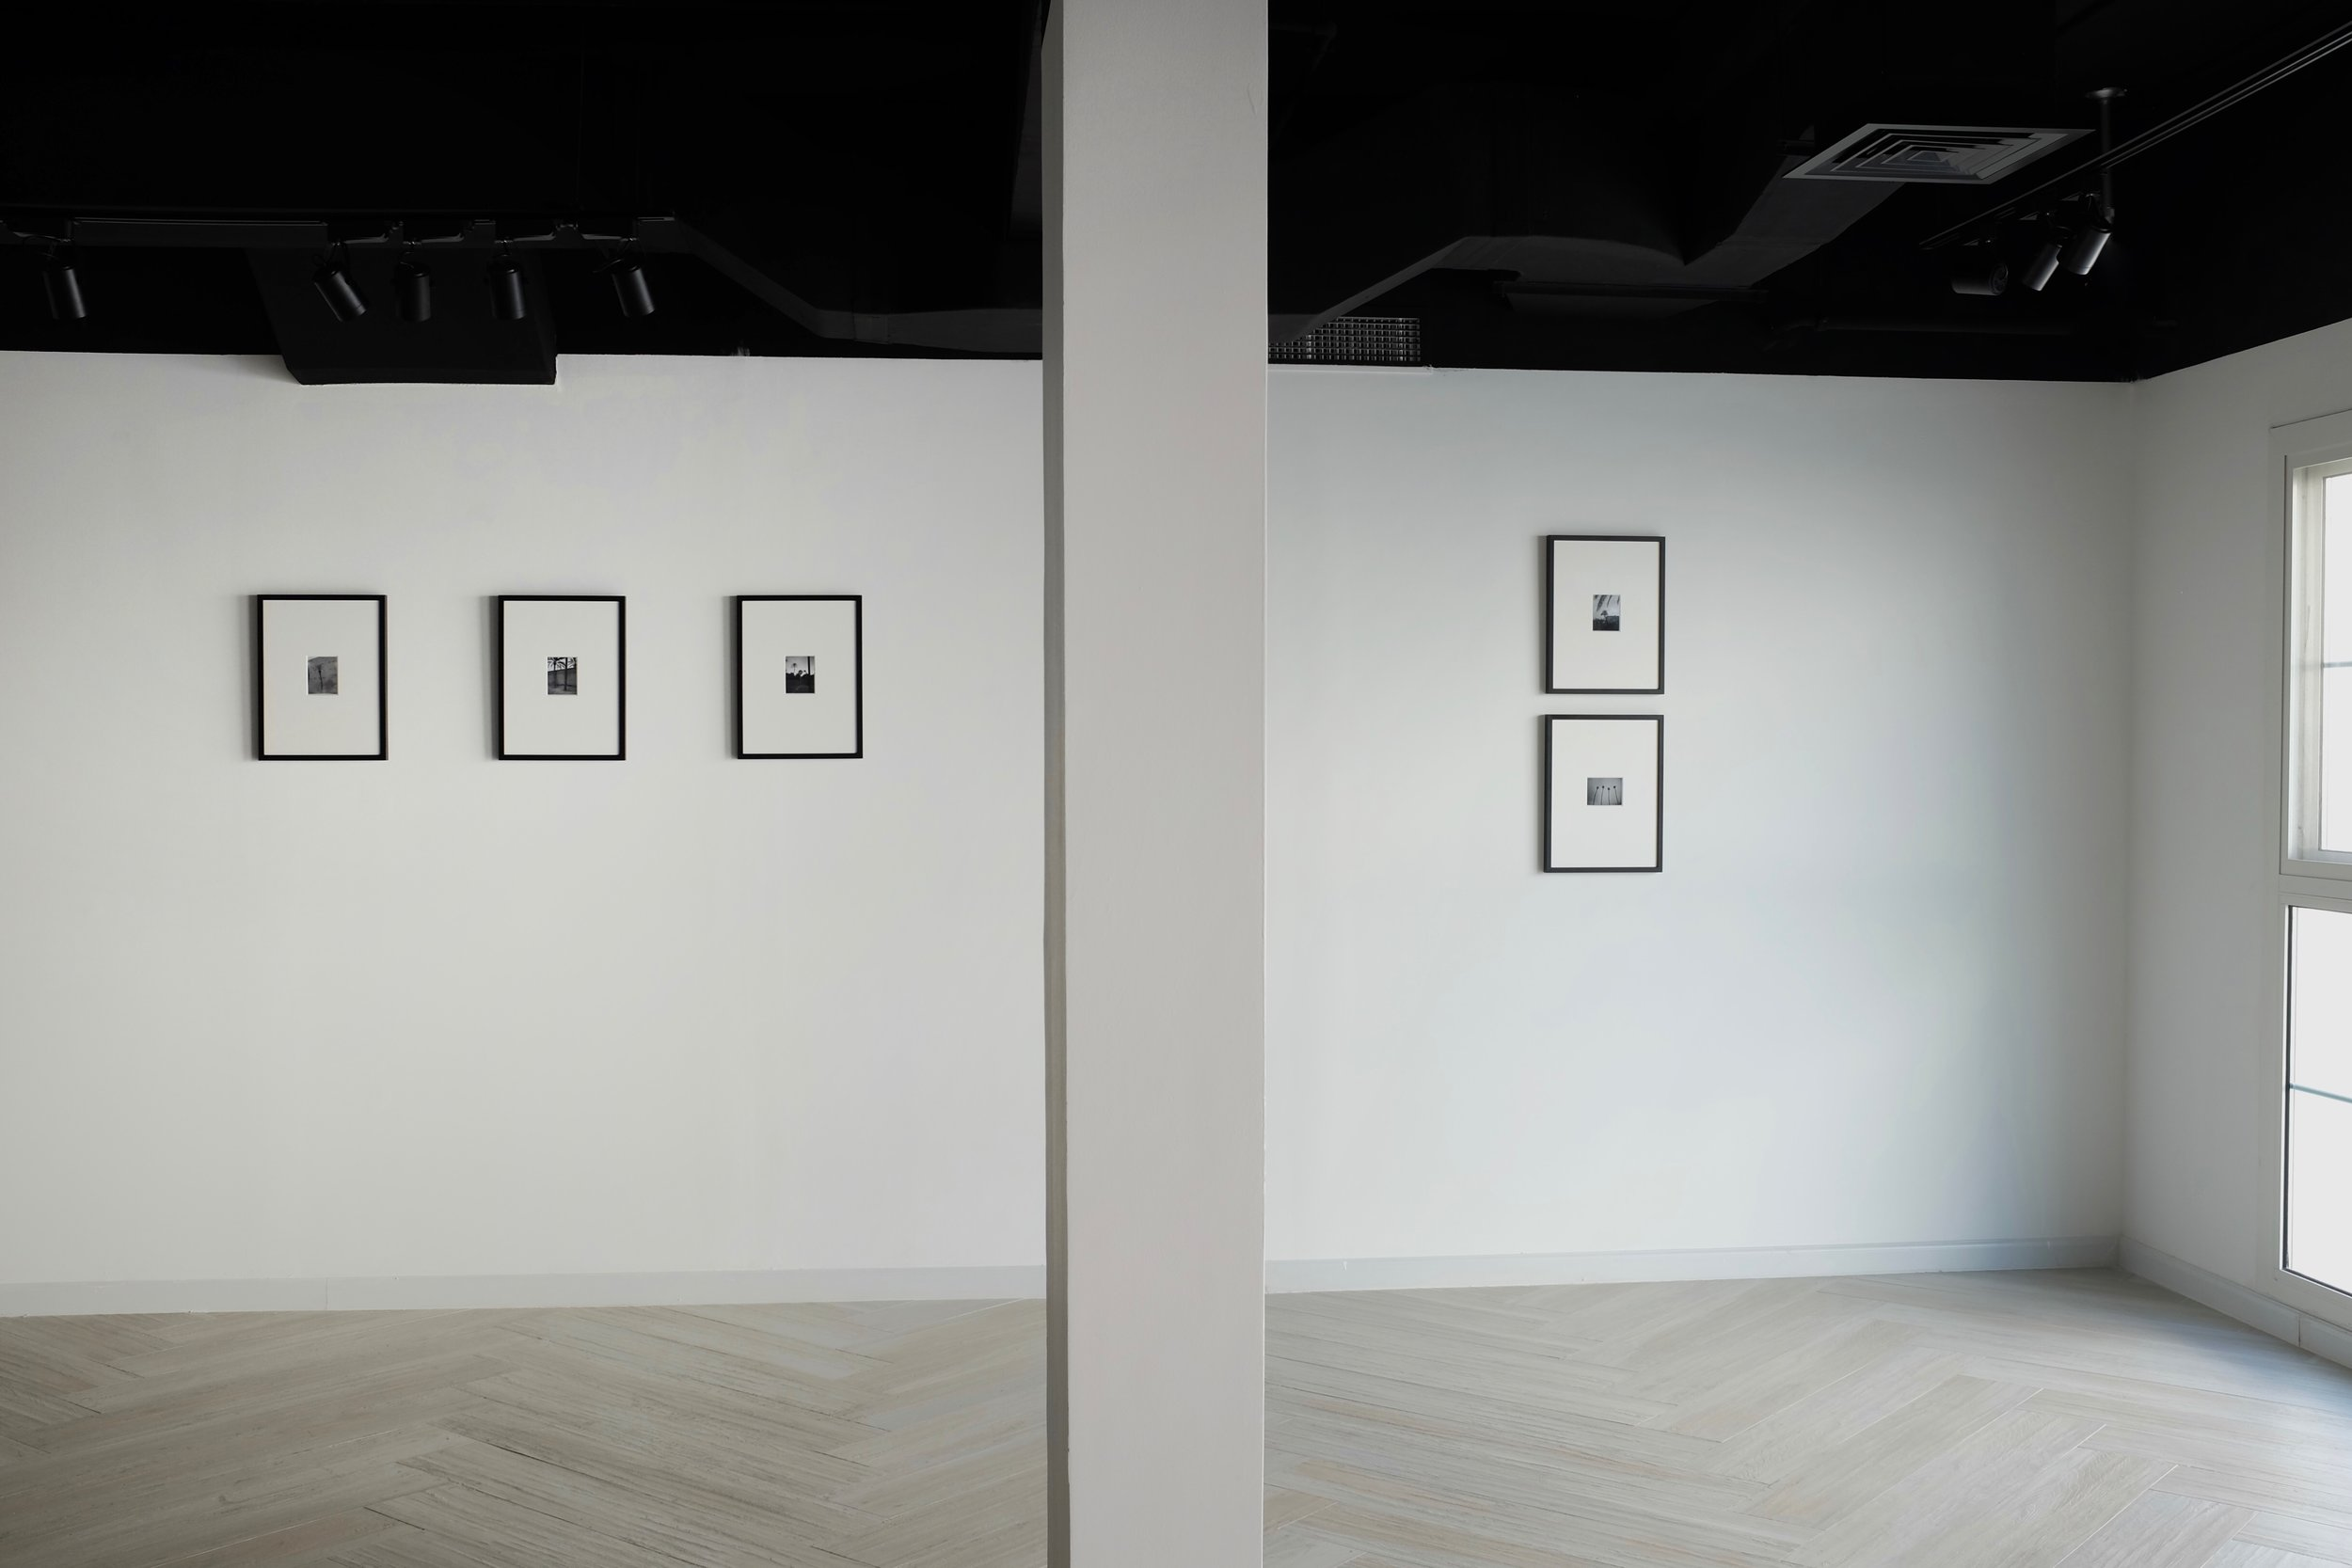 Cyrus Mahboubian Nomad solo show 3.jpg